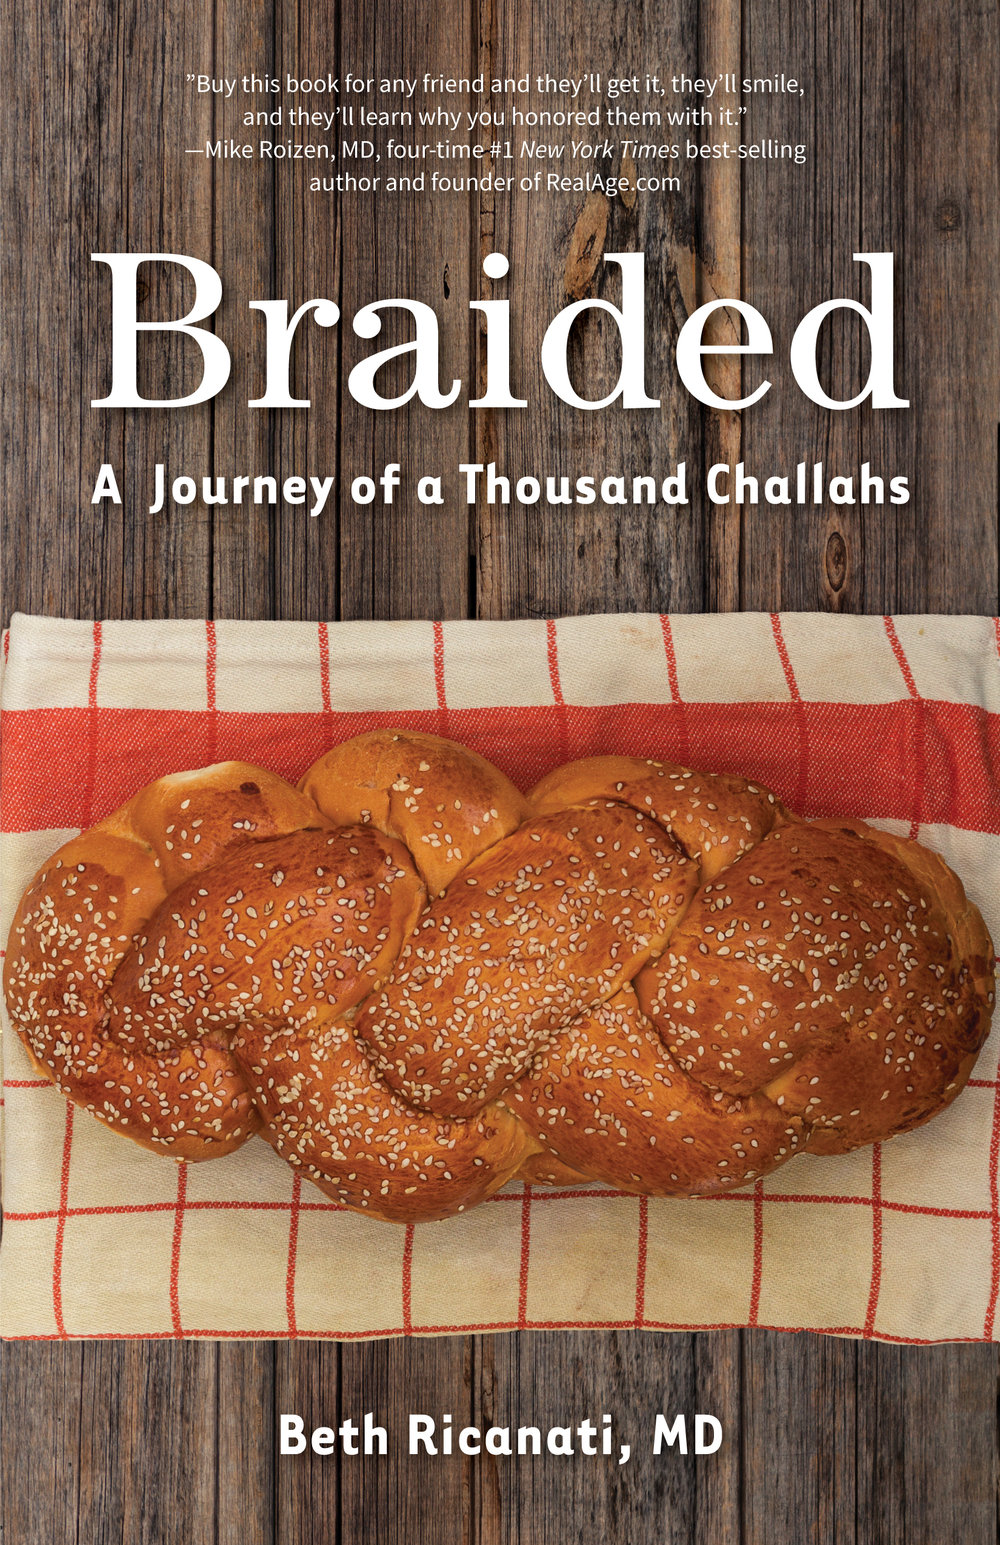 Braided-front-cover-blurb.jpg